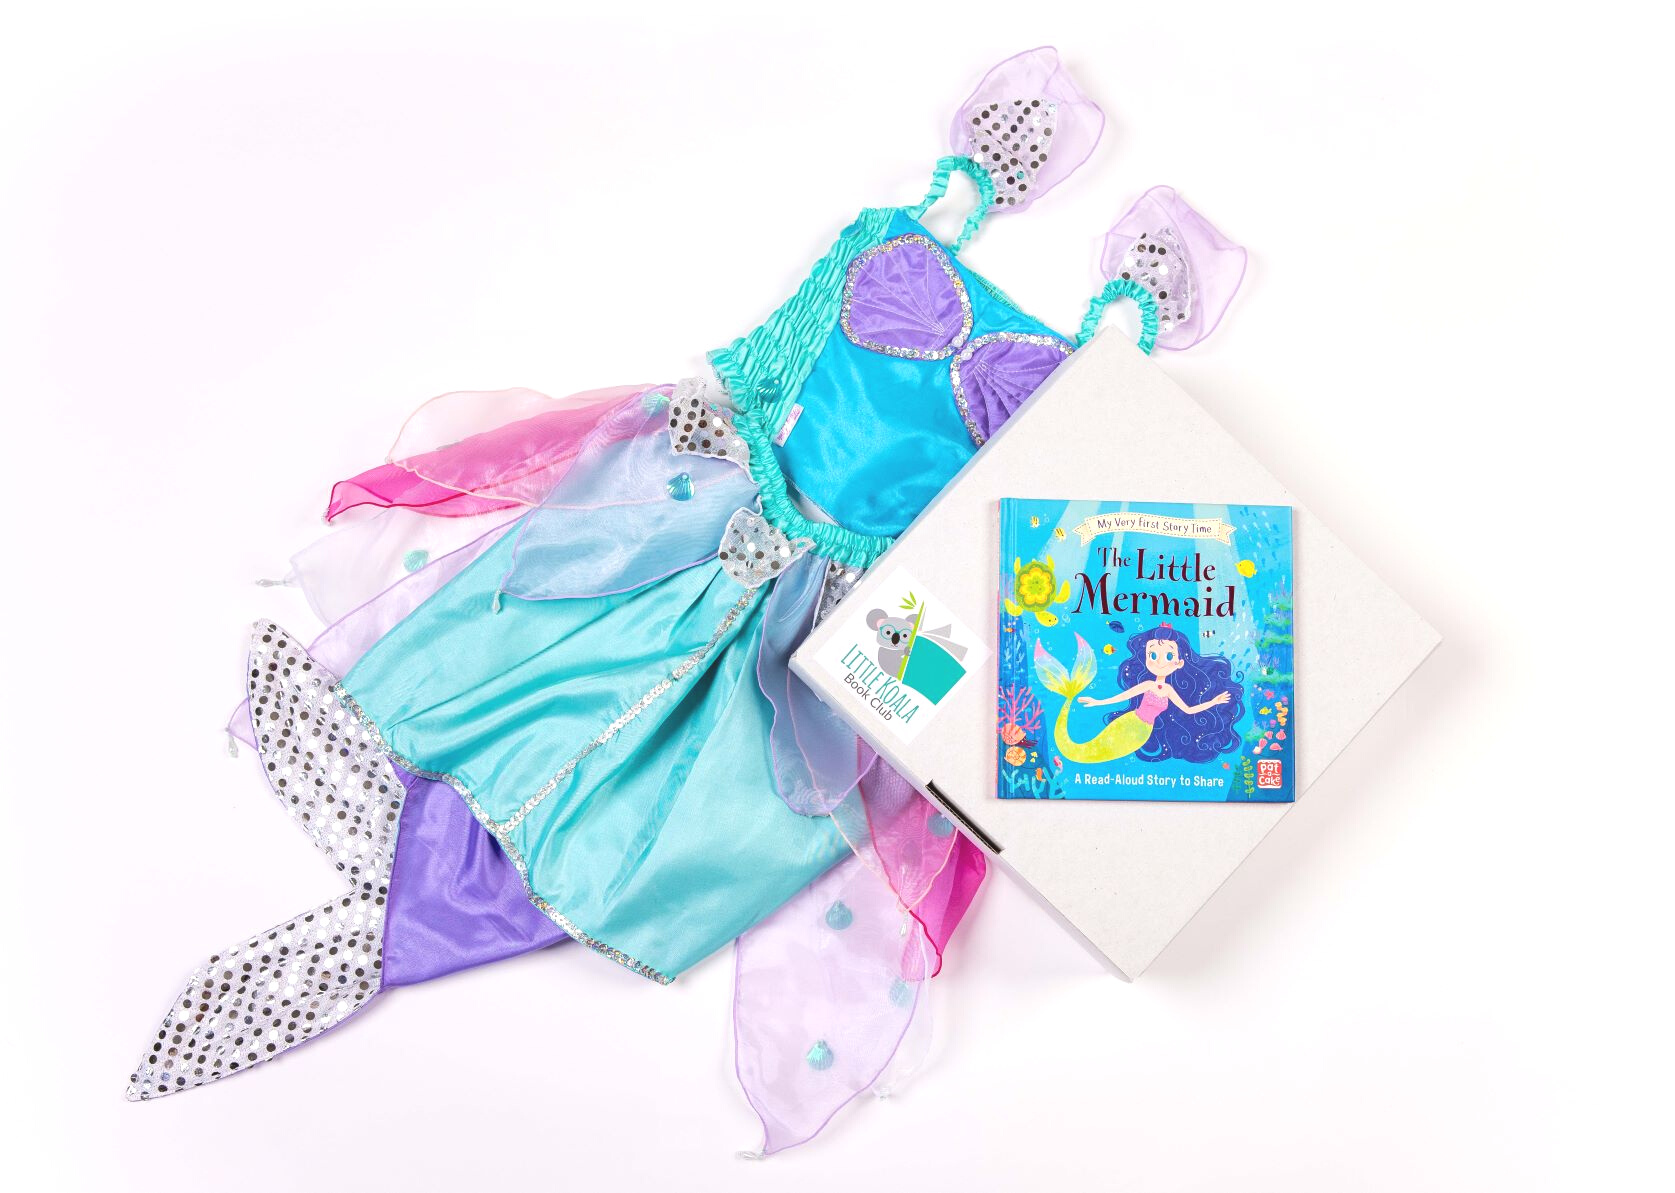 Mermaid Premium storybook & dress up box PRE-ORDER ONLY